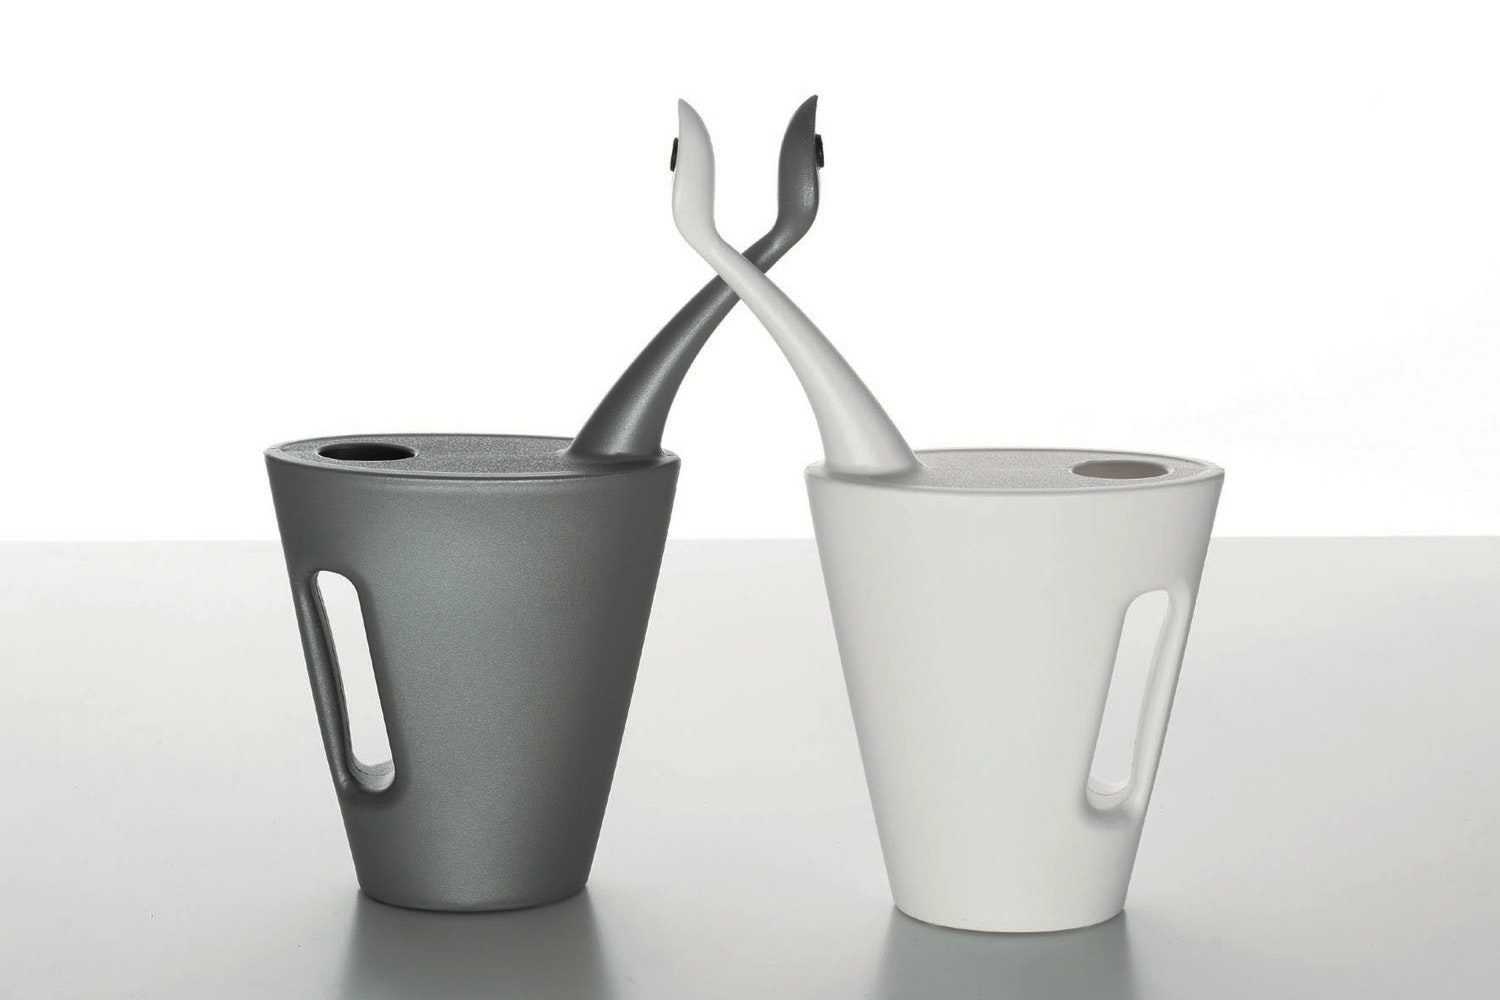 Bo-Tanica Watering Can by Denis Santachiara for Serralunga